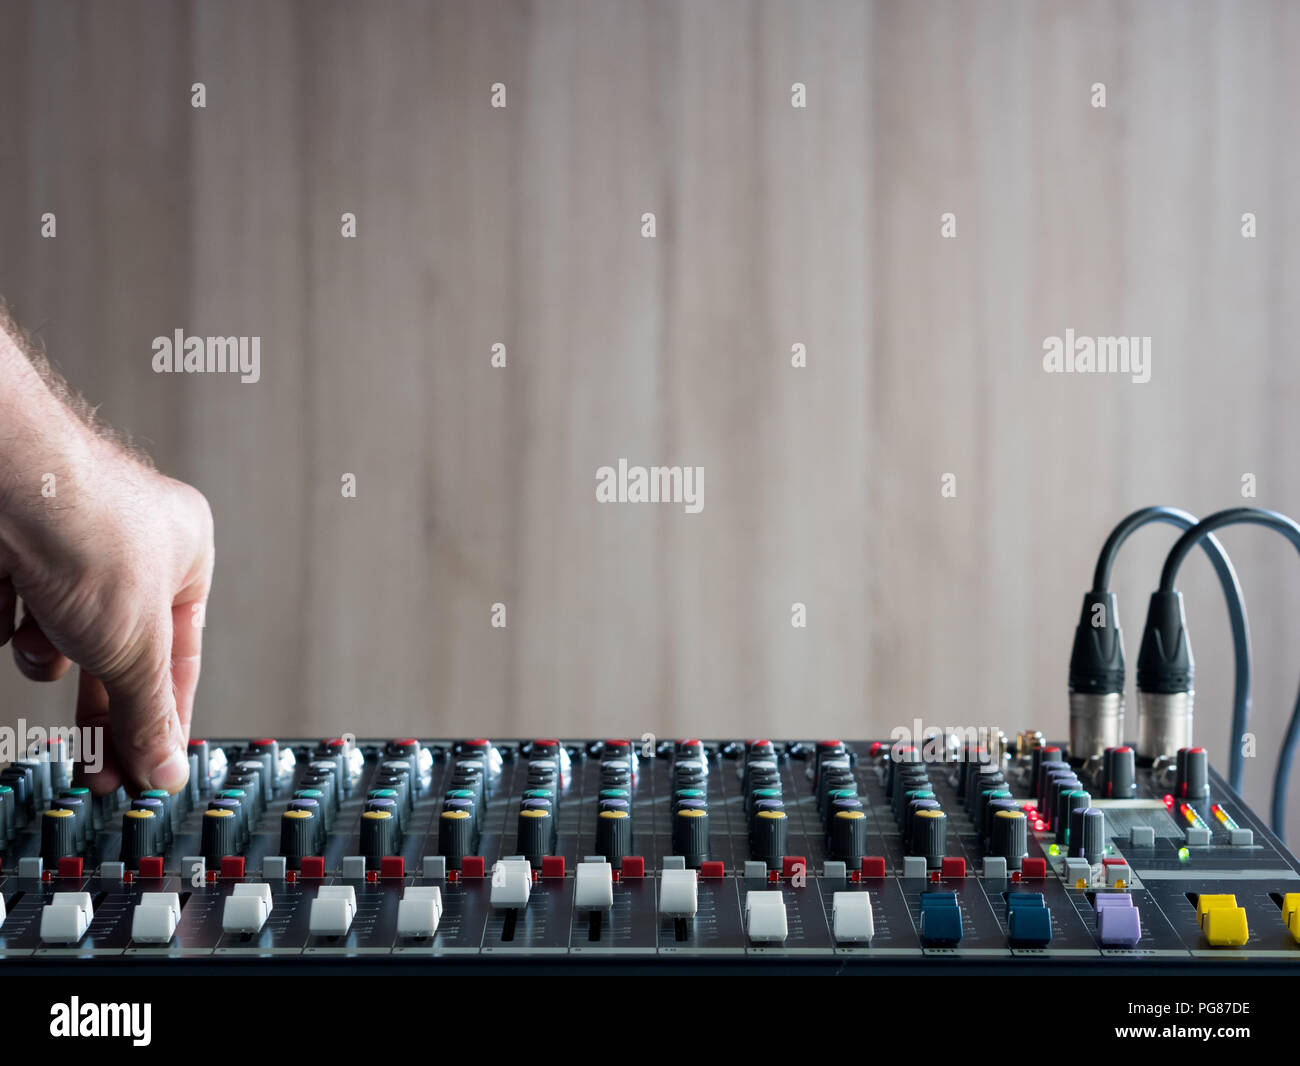 Adjusting buttons on audio mixer in music studio - Stock Image